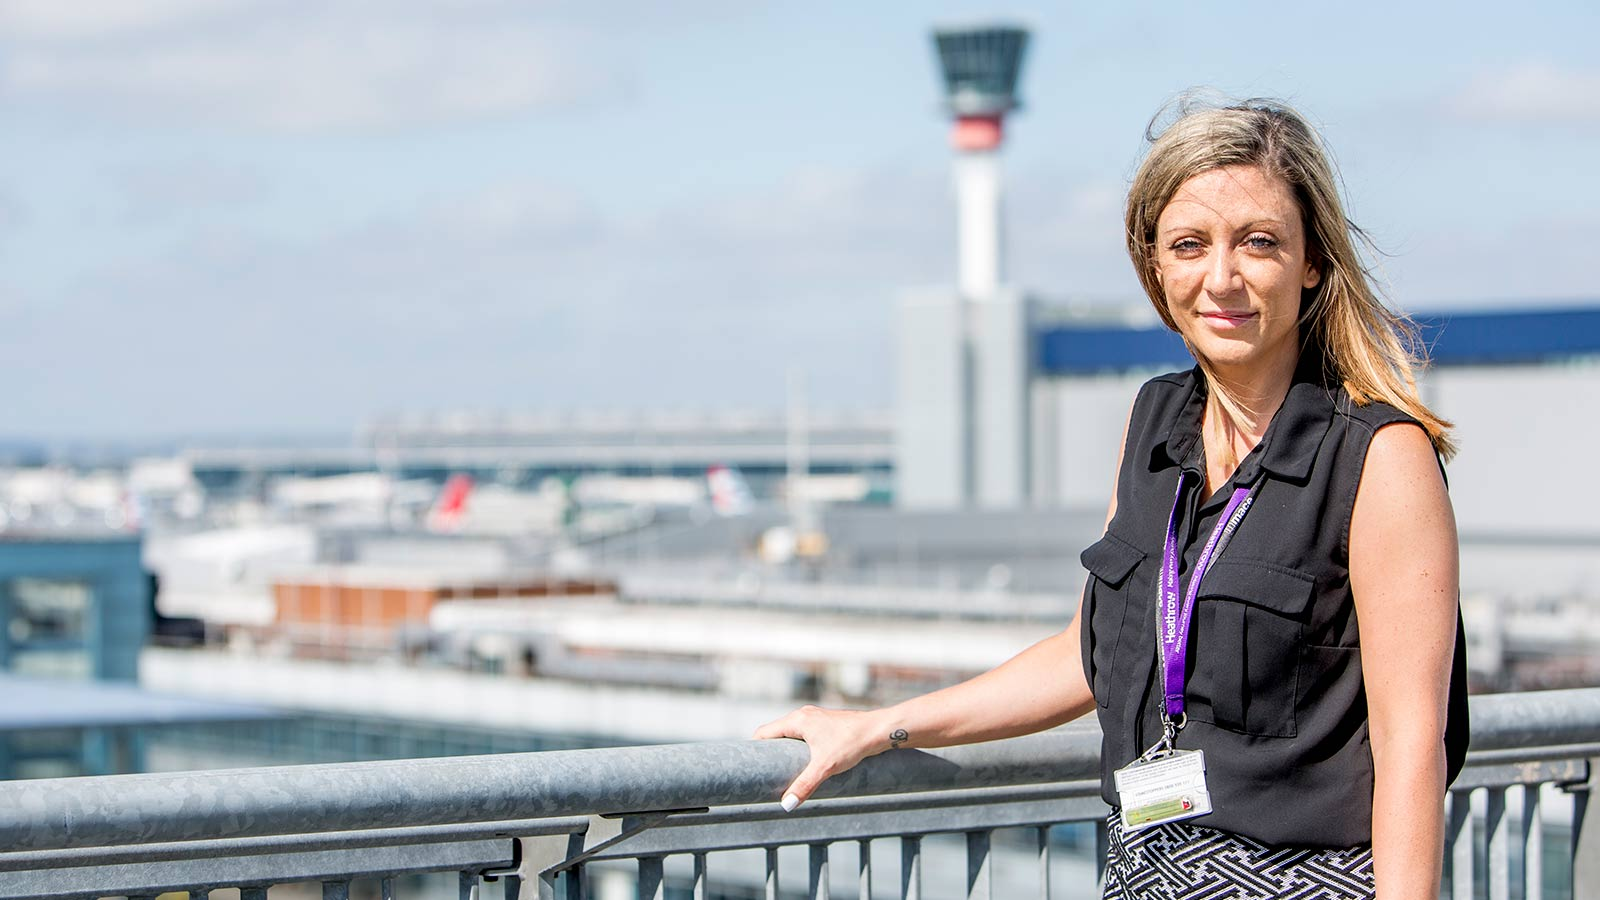 Alex Endersby, Planning Manager in Aviation at Mace